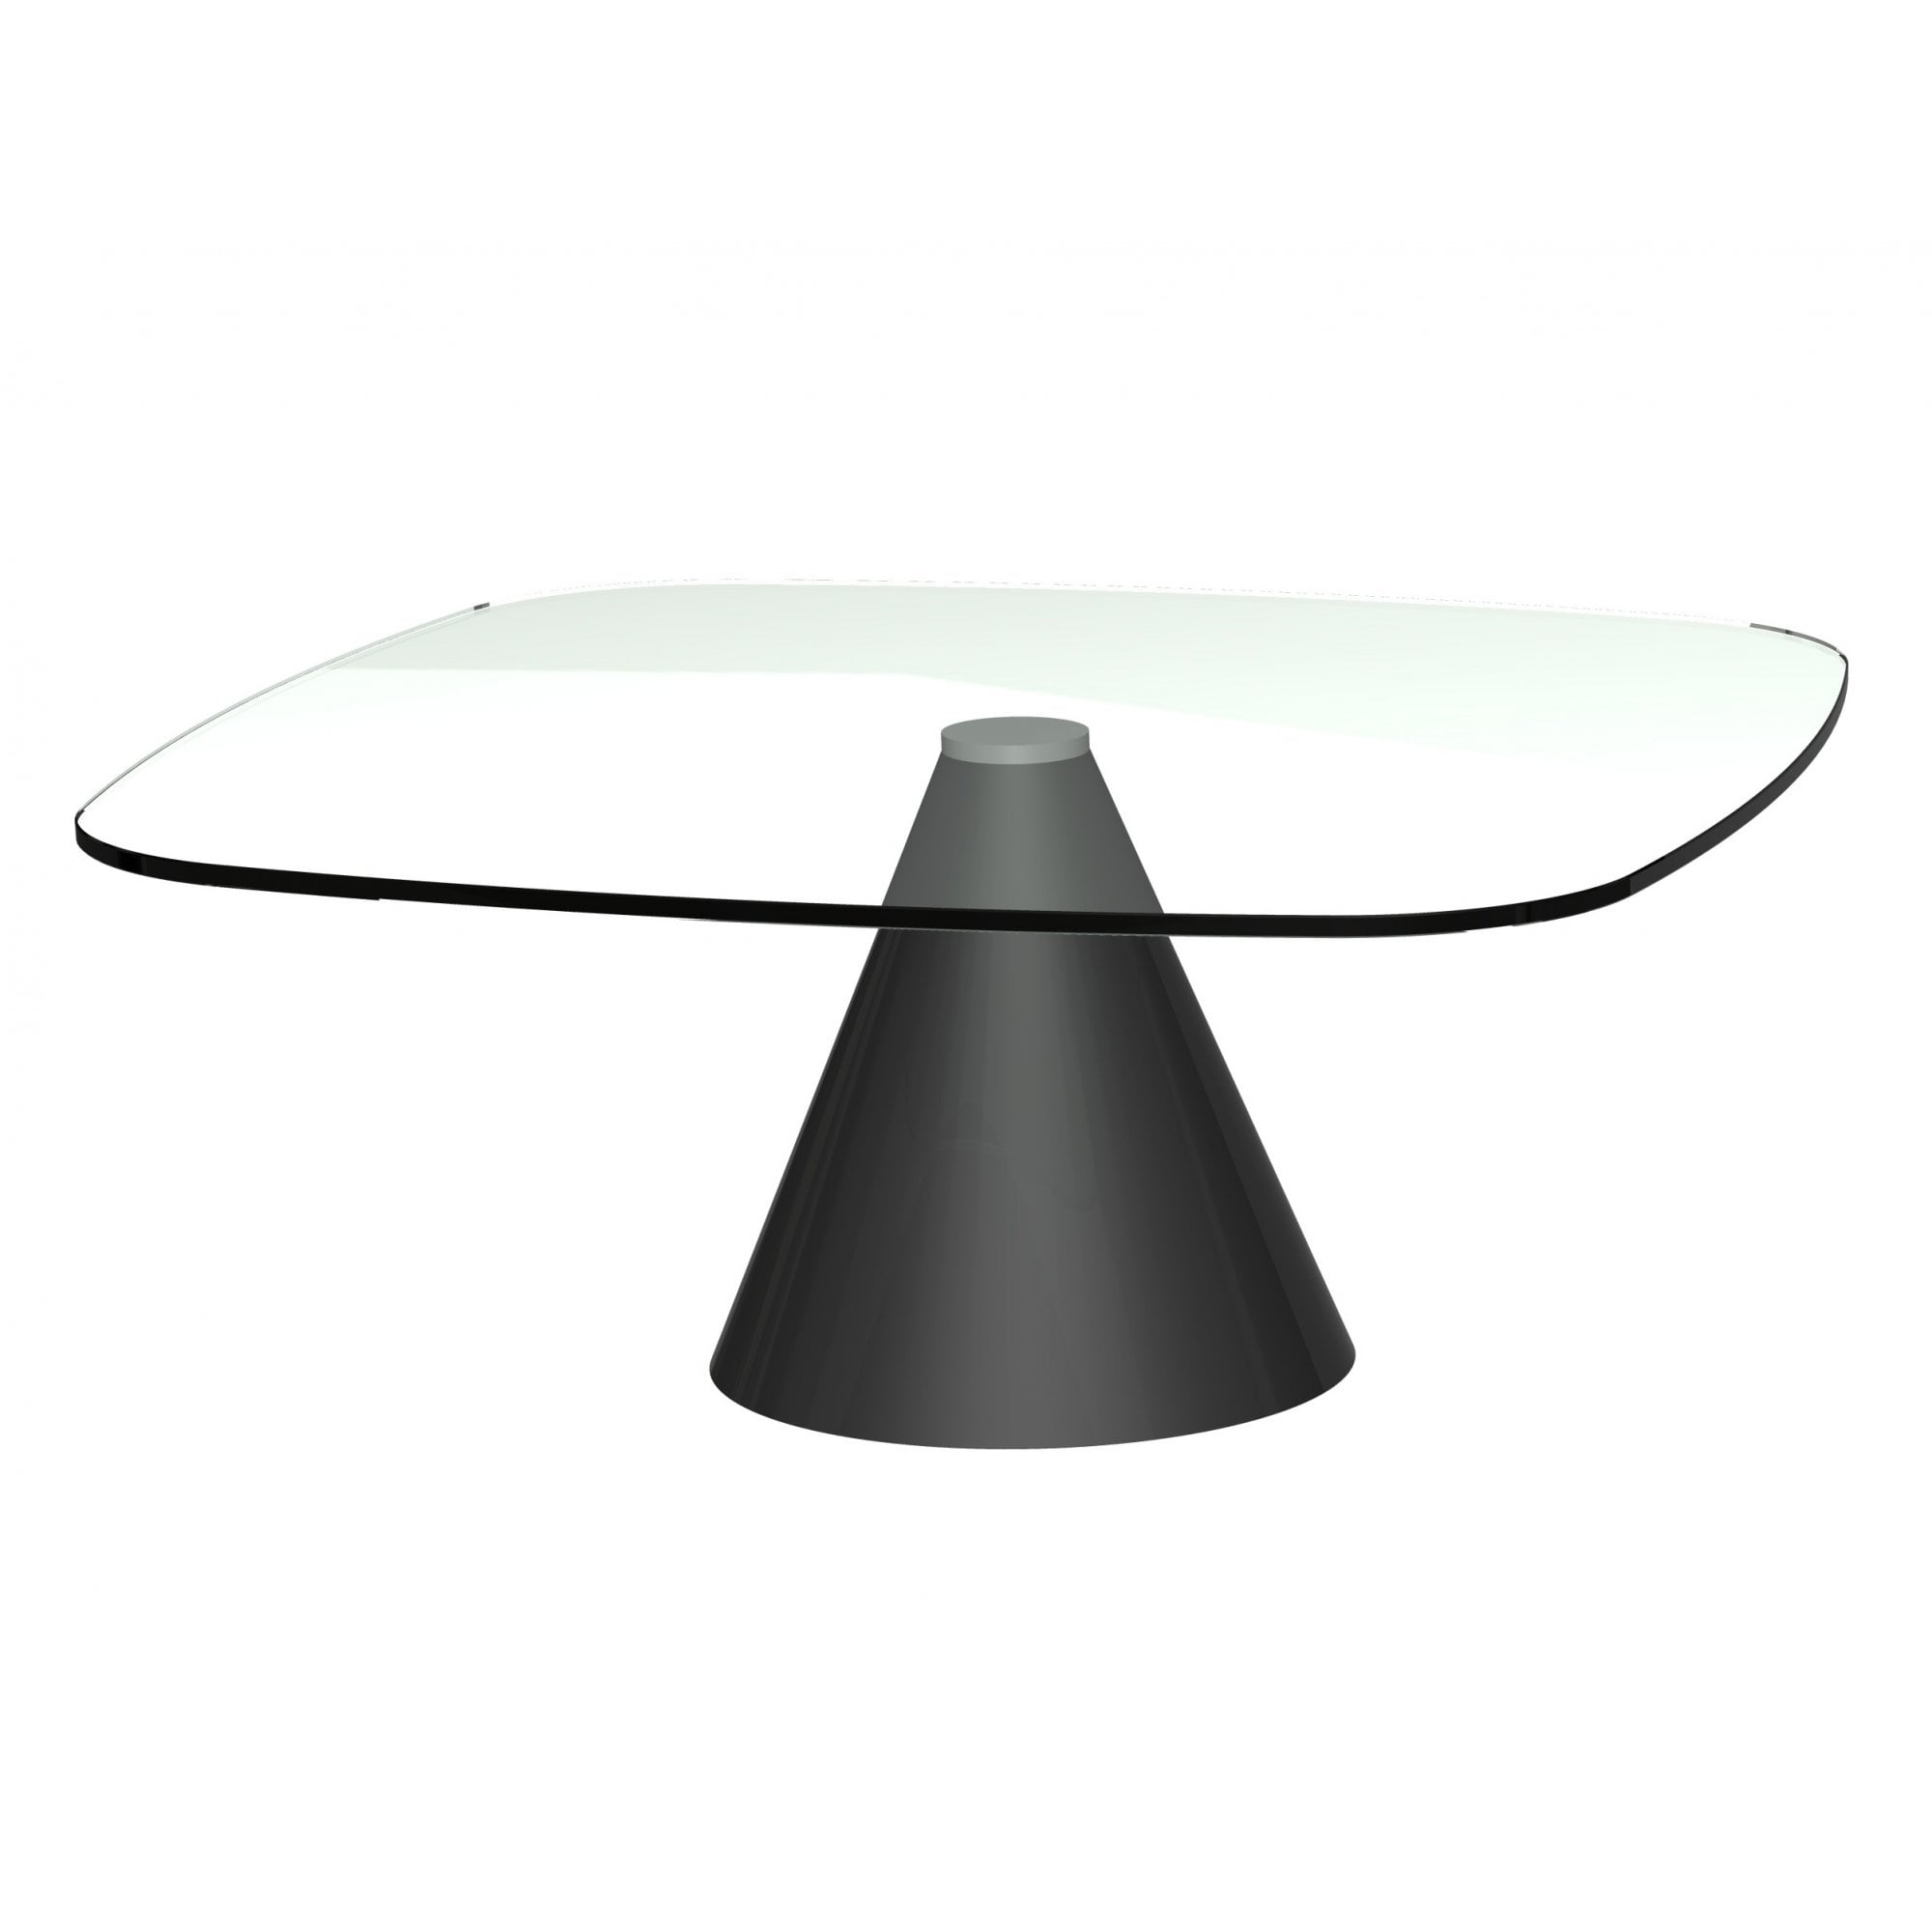 Picture of: Square Clear Glass Coffee Table W Conical Black Base From Fusion